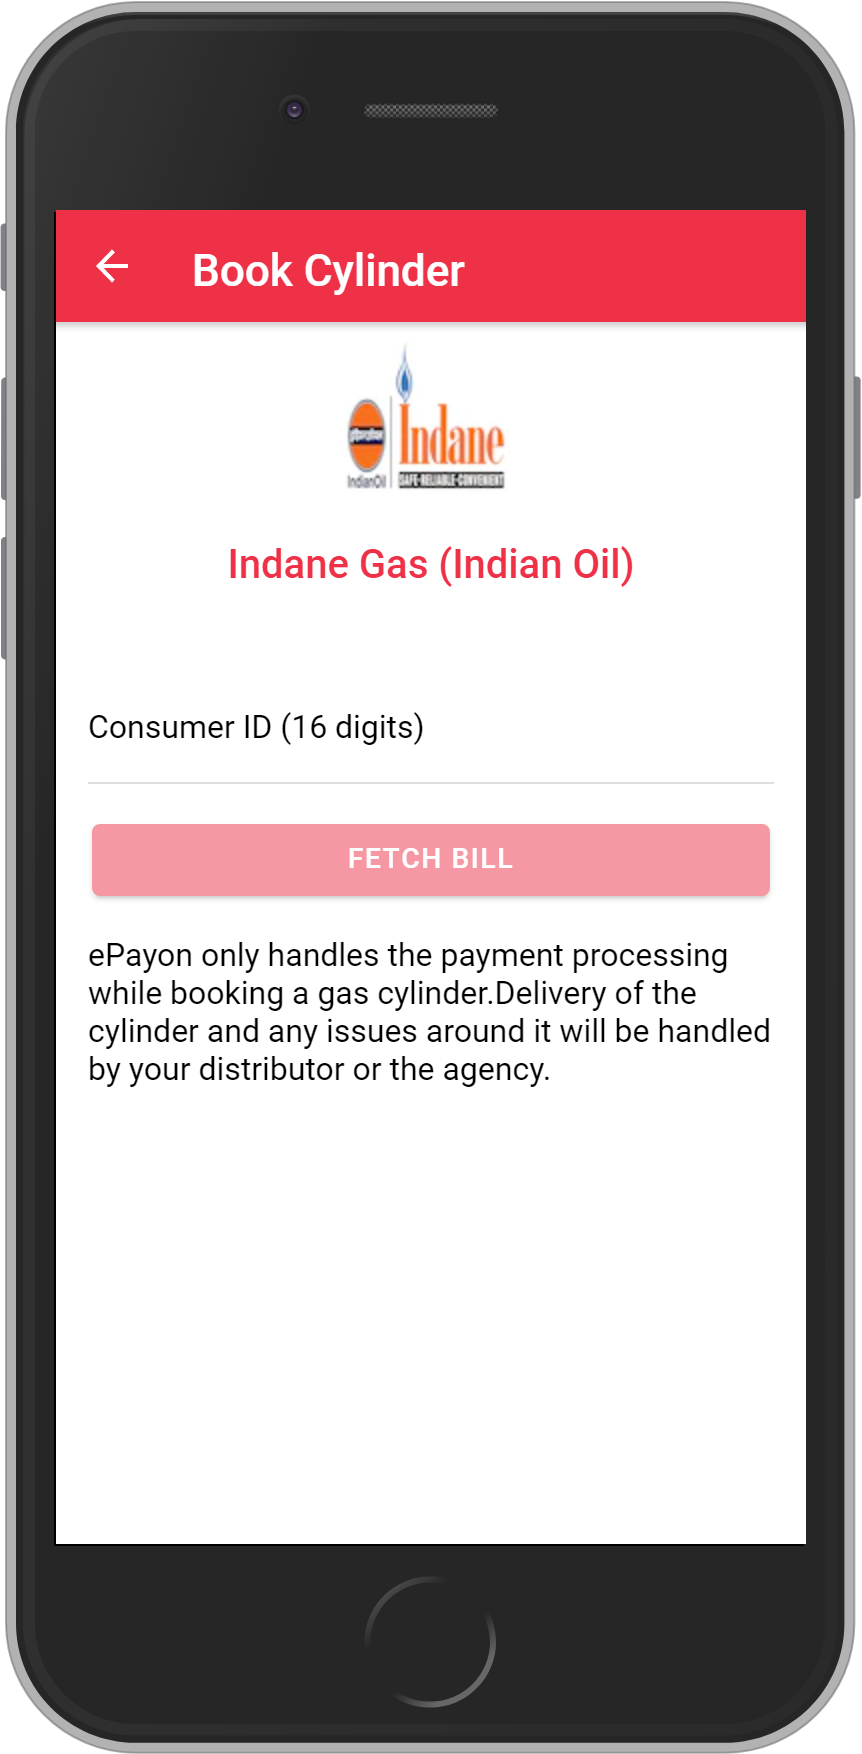 Get Rs. 10 on First cylinder booking(Every month) and than UNLIMITED <b>0.1%</b> CASHBACK on Indane Gas (Indian Oil) Cylinder booking.